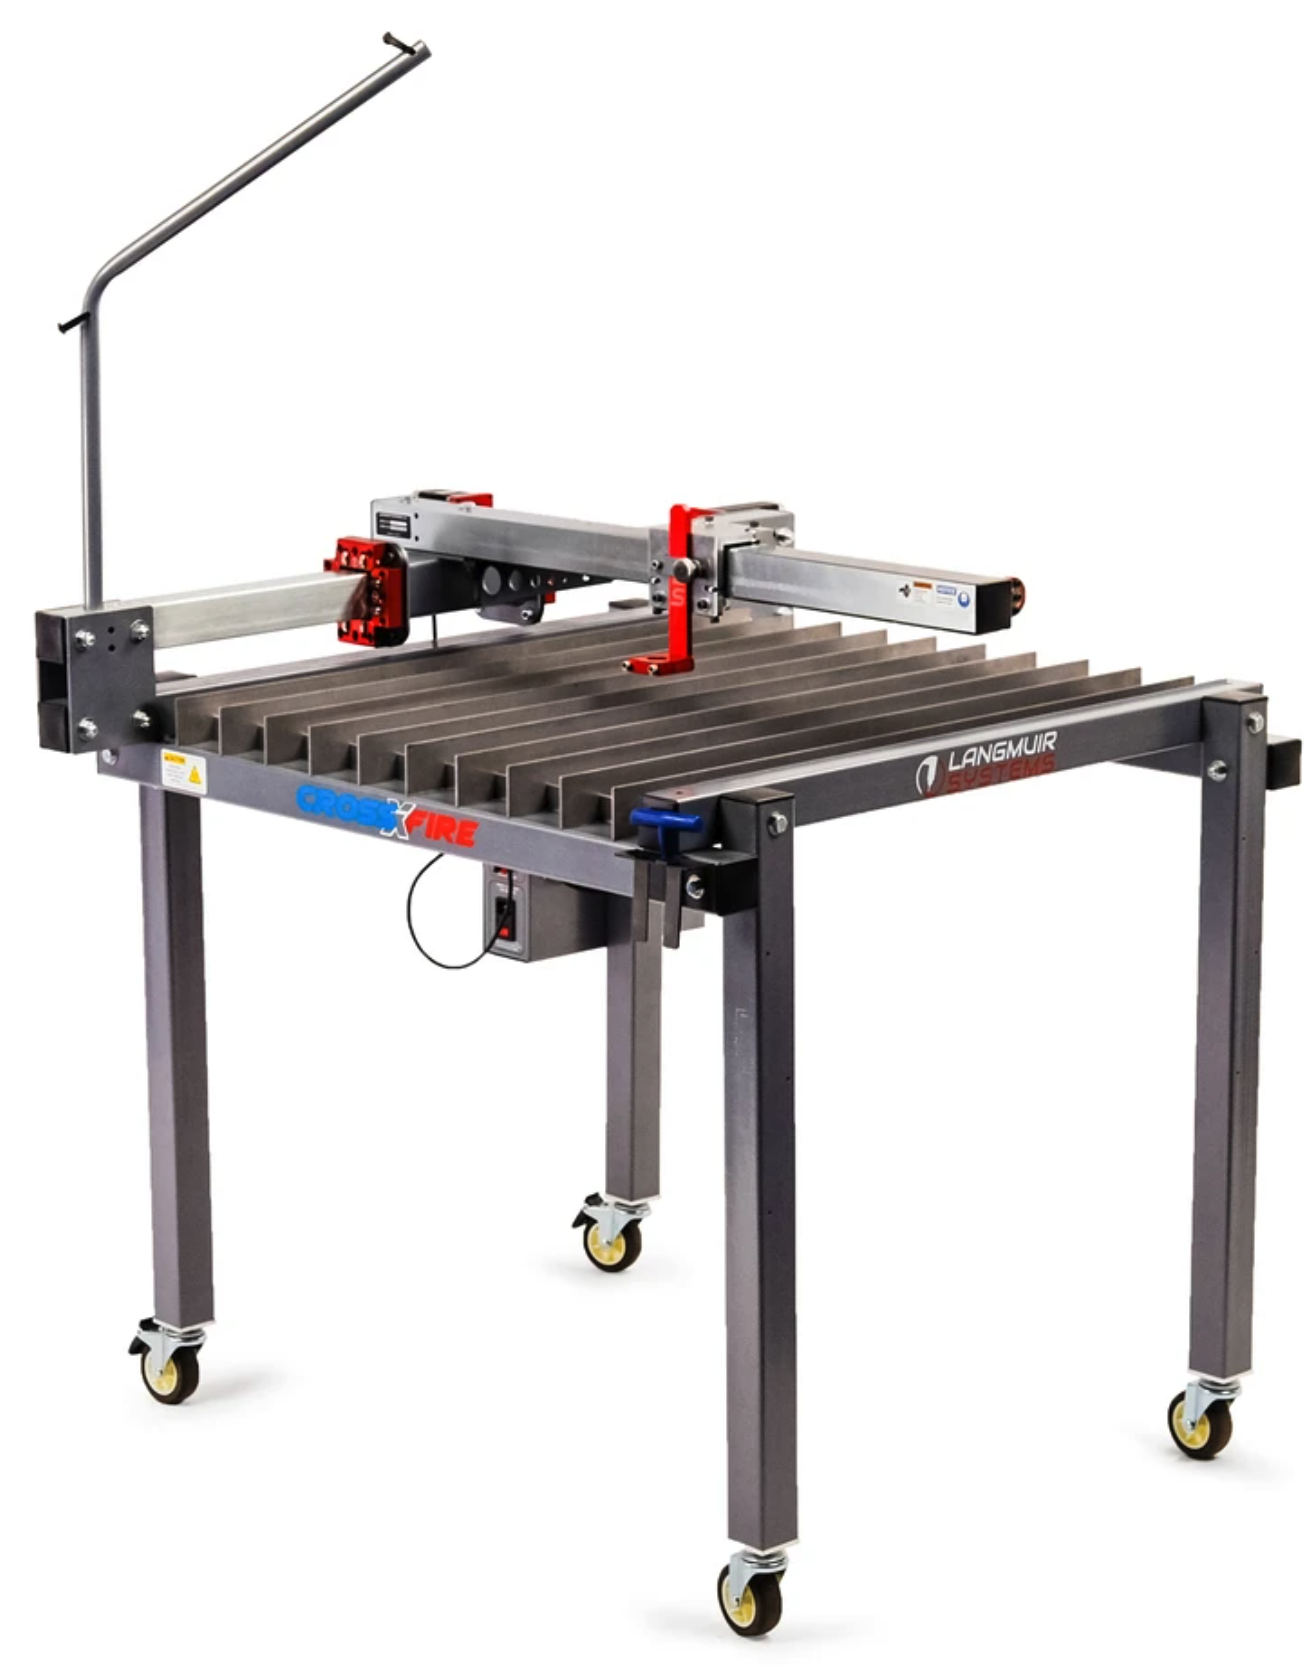 CrossFire CNC Plasma Table